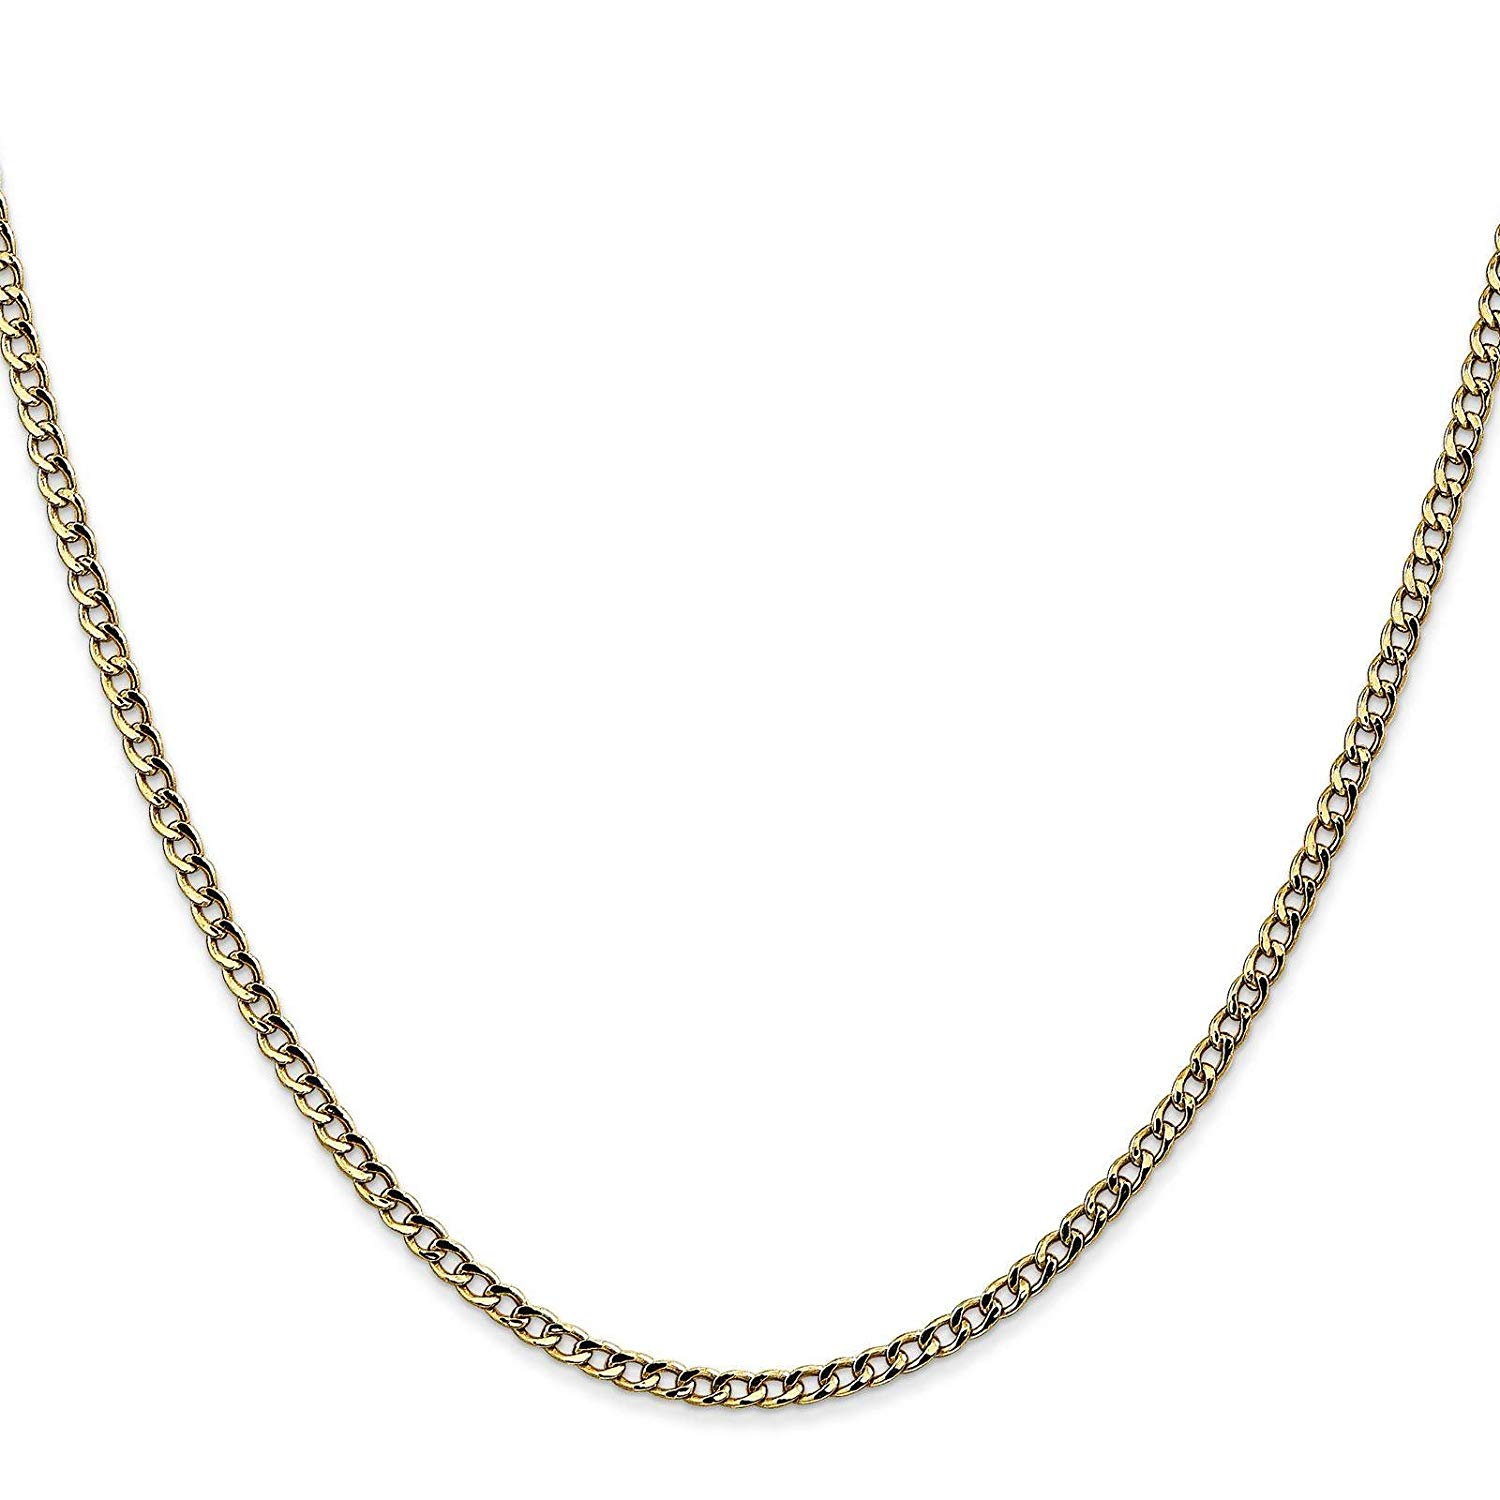 "14k Yellow Gold 2.5mm Semi-Solid Polished Curb Link Chain Necklace Bracelet Anklet 7"" - 24"""